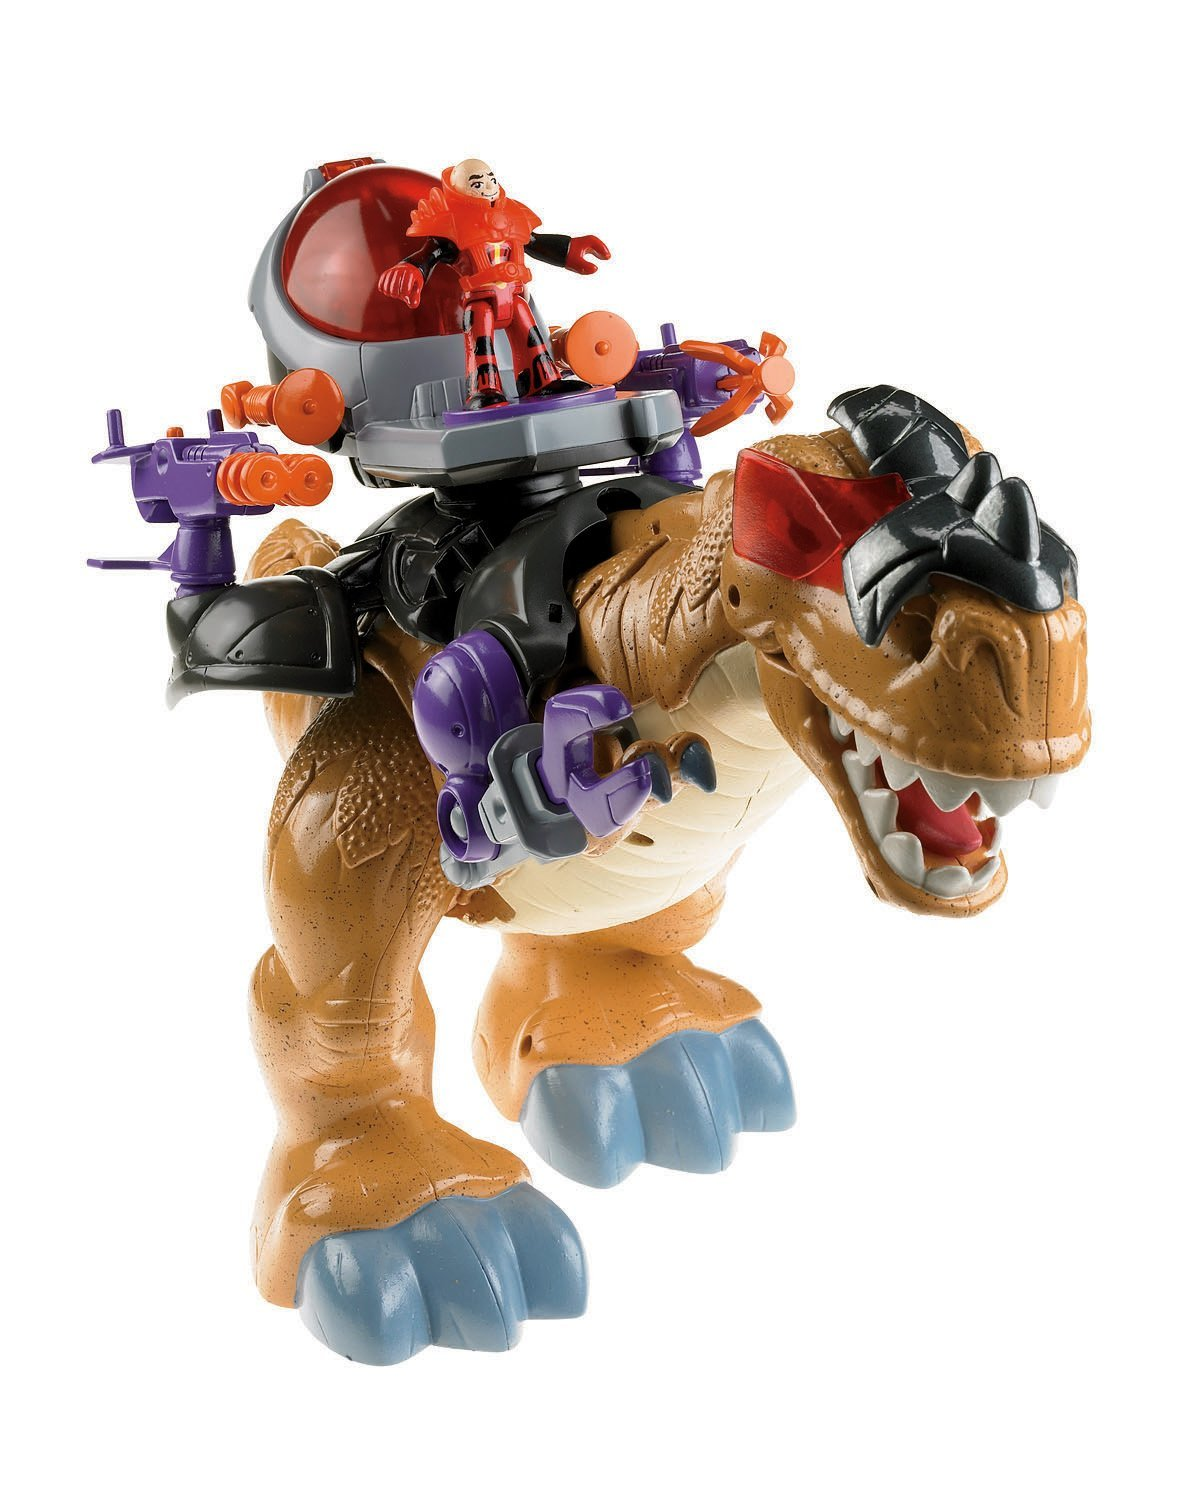 Imaginext Mega T-Rex Toy only $19.41 from Amazon! (reg $45)